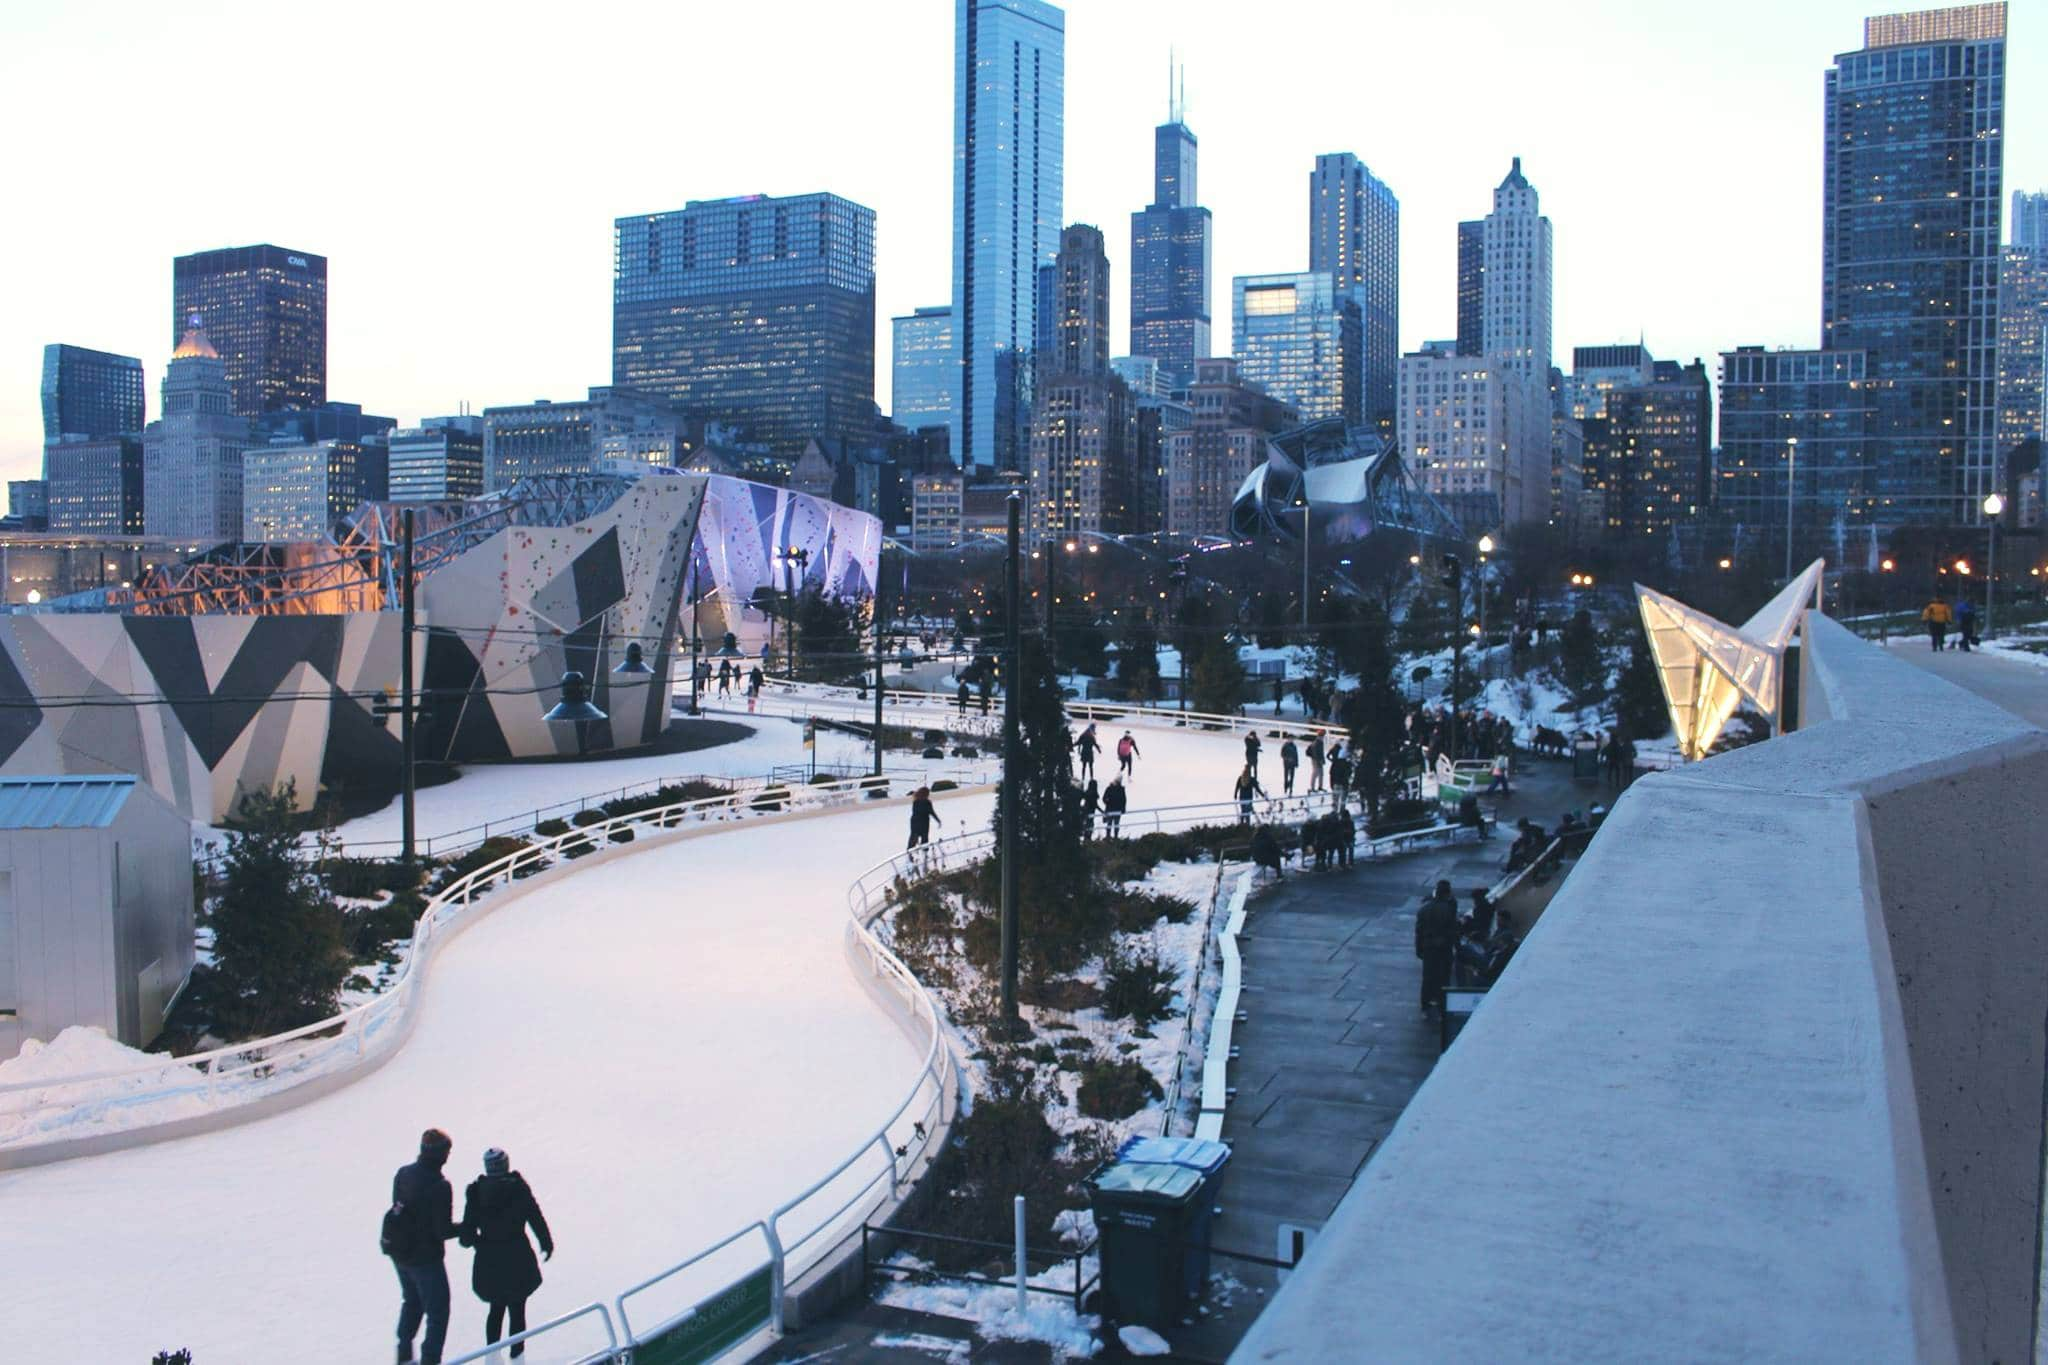 Chicago's Maggie Daley Ice Rink